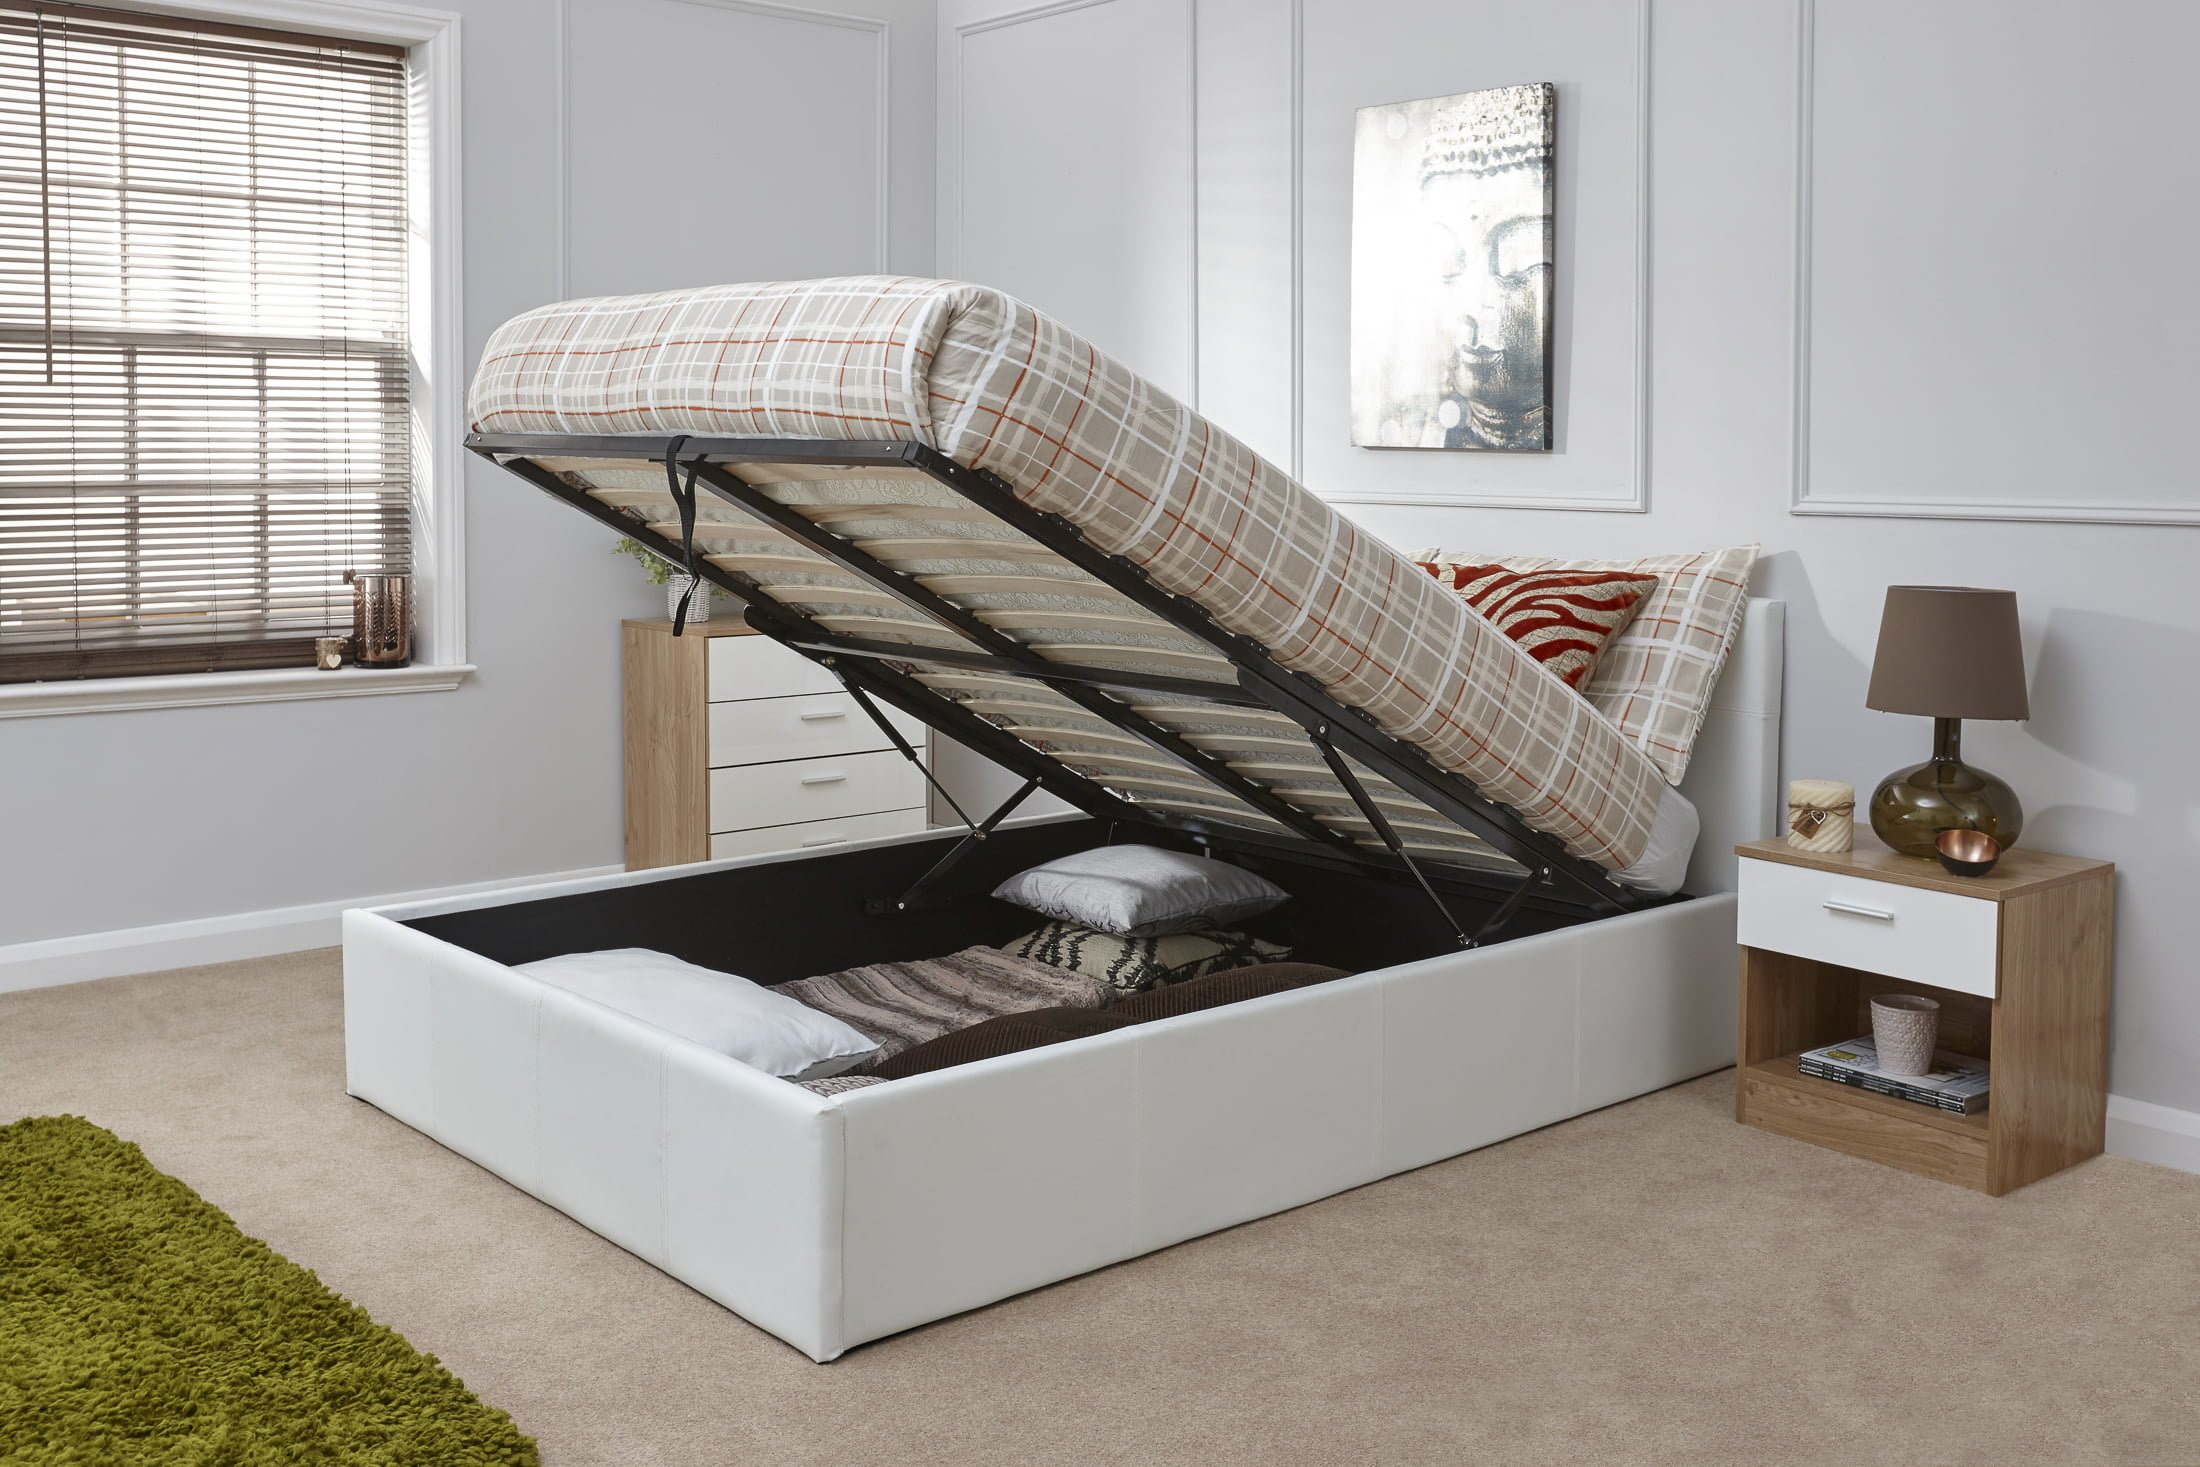 small double arizona white ottoman bed frame dublin beds. Black Bedroom Furniture Sets. Home Design Ideas